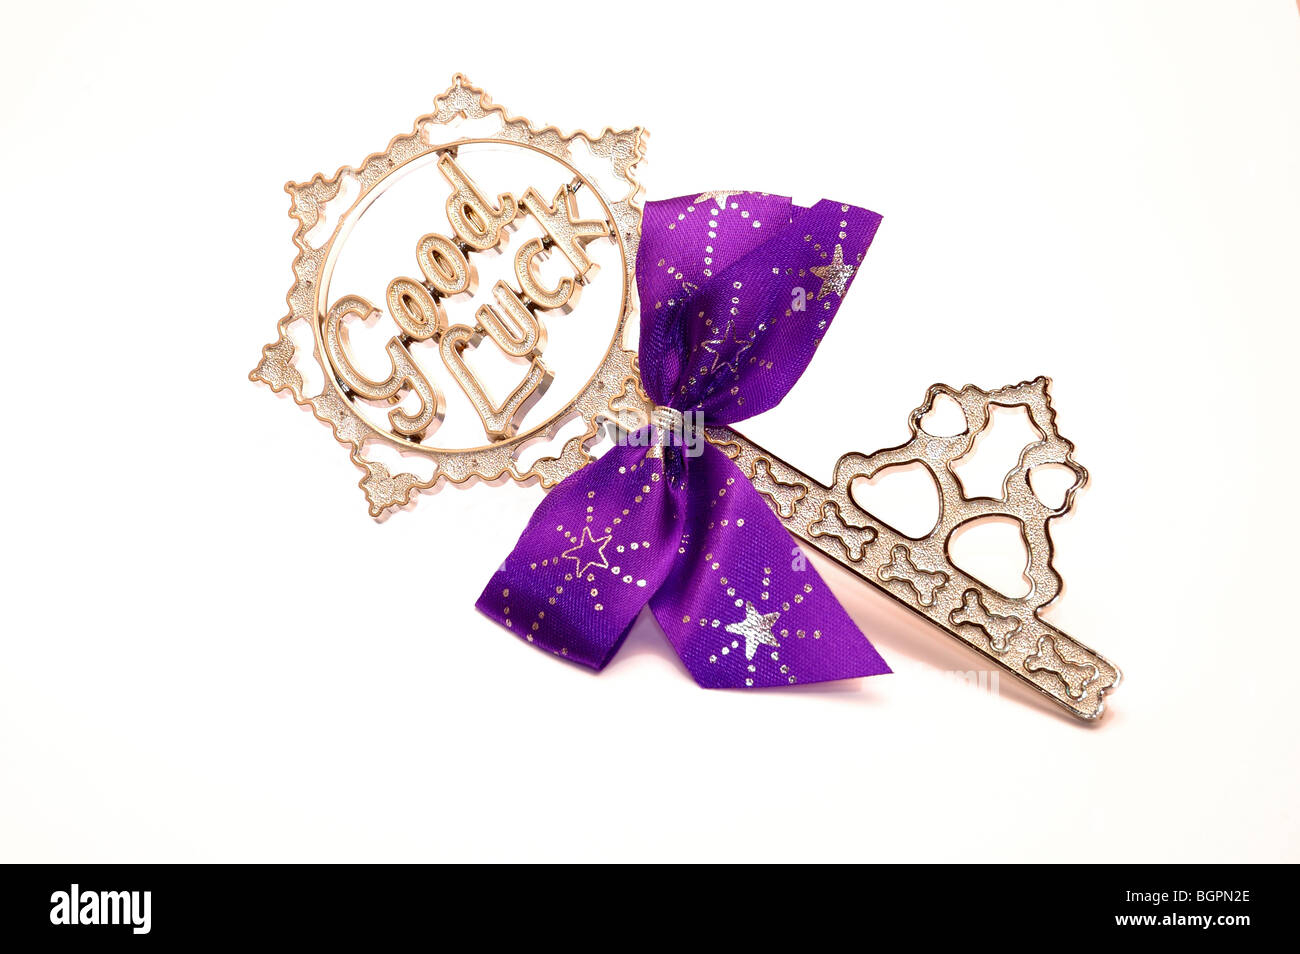 Large silver key with the words good luck and a purple ribbon on a white background - Stock Image